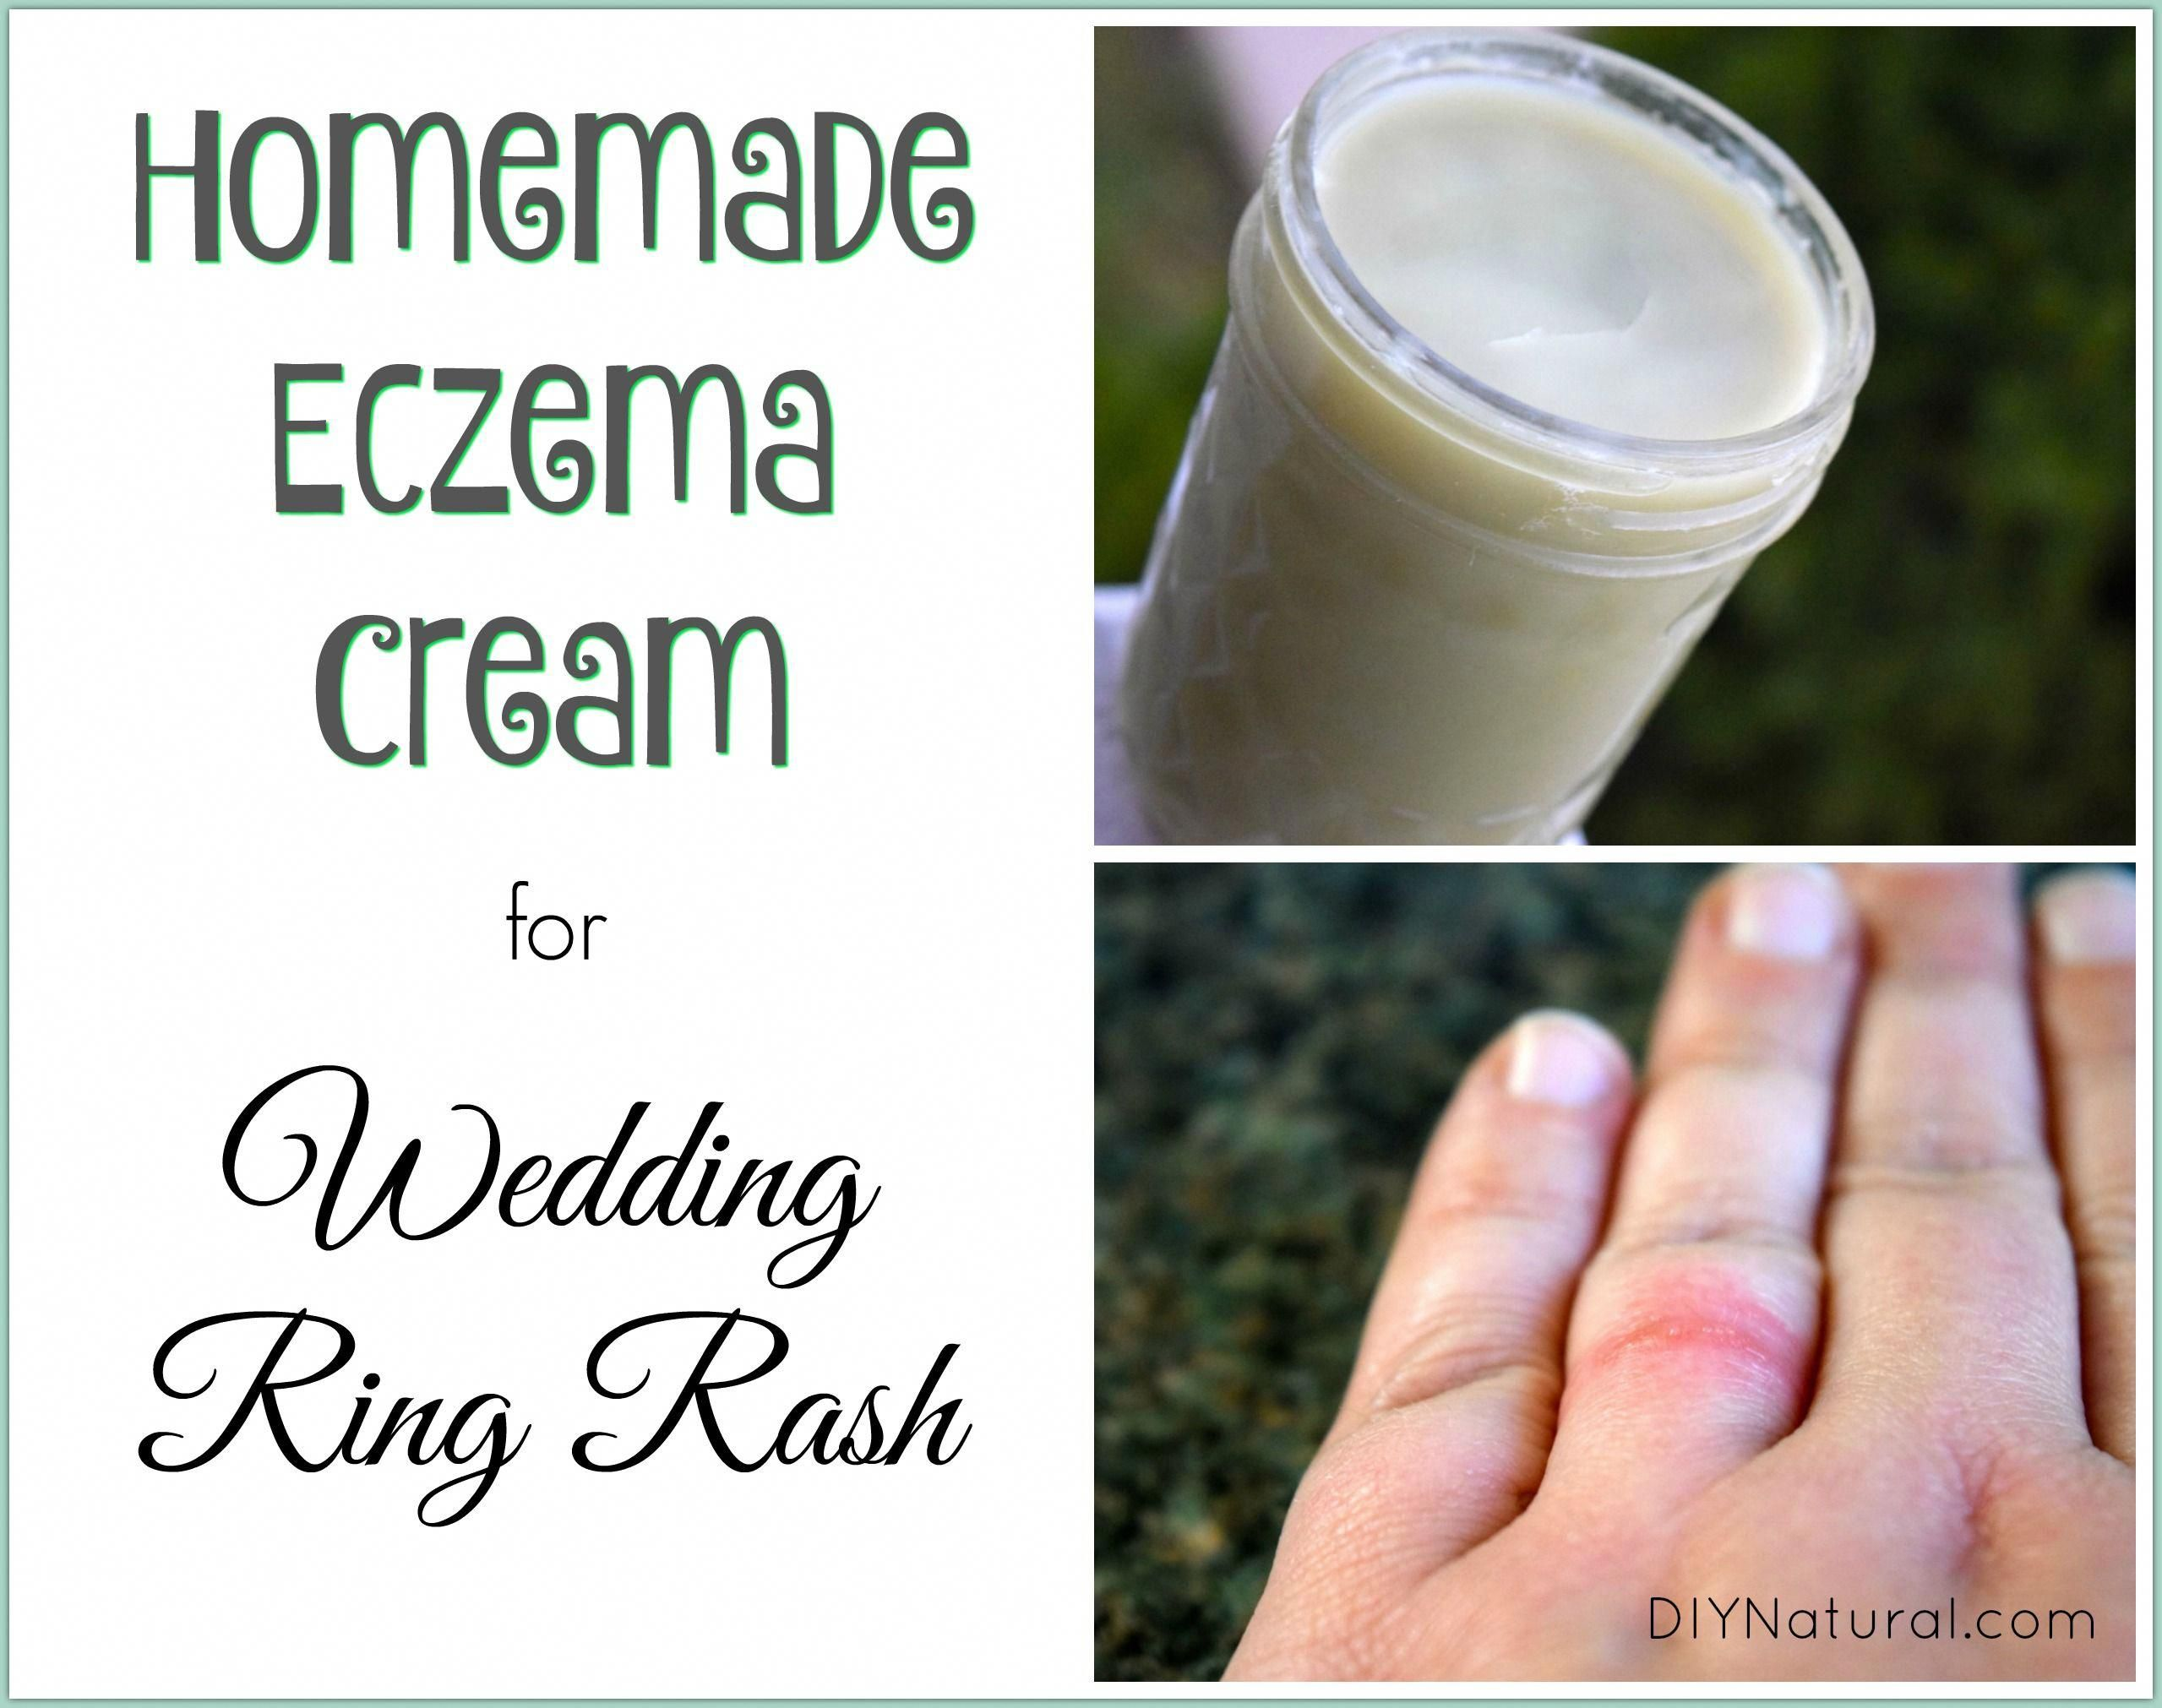 Wedding Ring Rash A Homemade Cream That Relieves and